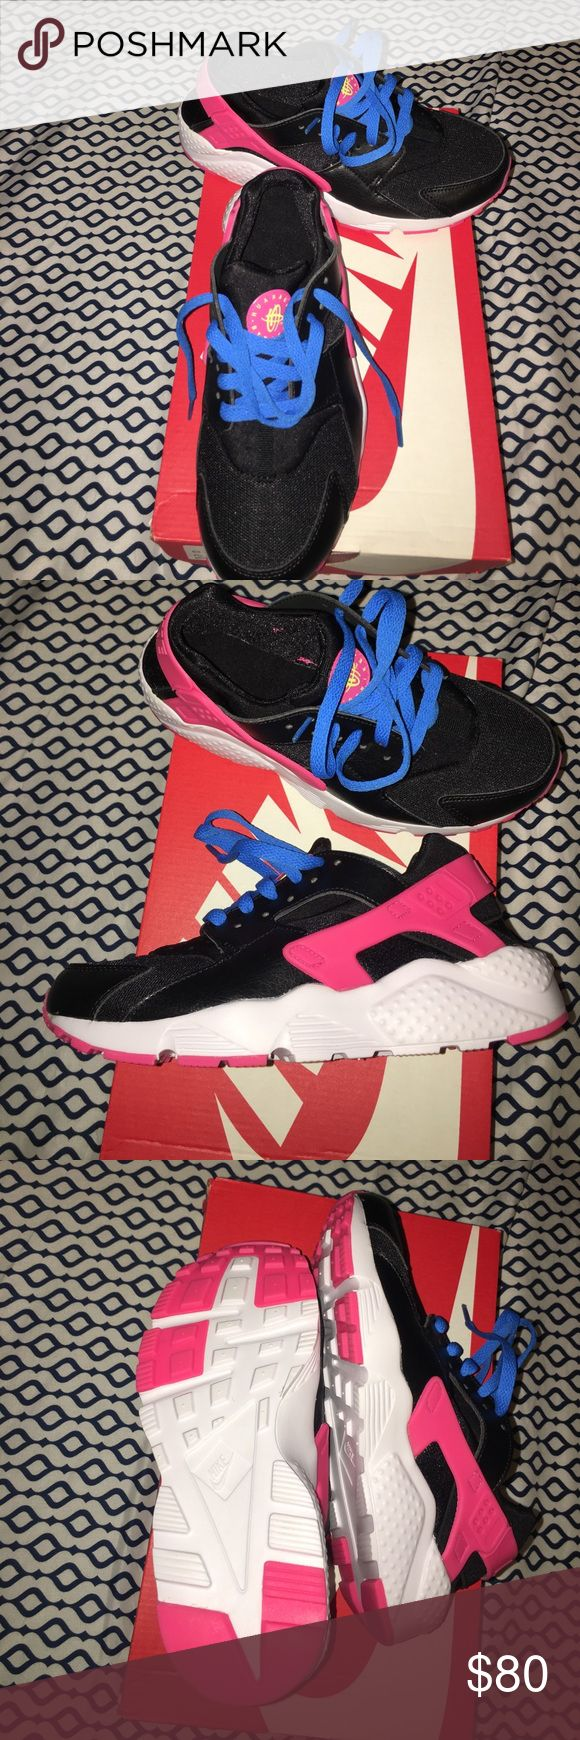 Nike pink and black shoes Nike huarache run brand new didn't fit me the laces can easily be replaced with black and white ones if the  blue ones don't work! I wear size 6 but they were a little too big for me. Nike Shoes Athletic Shoes